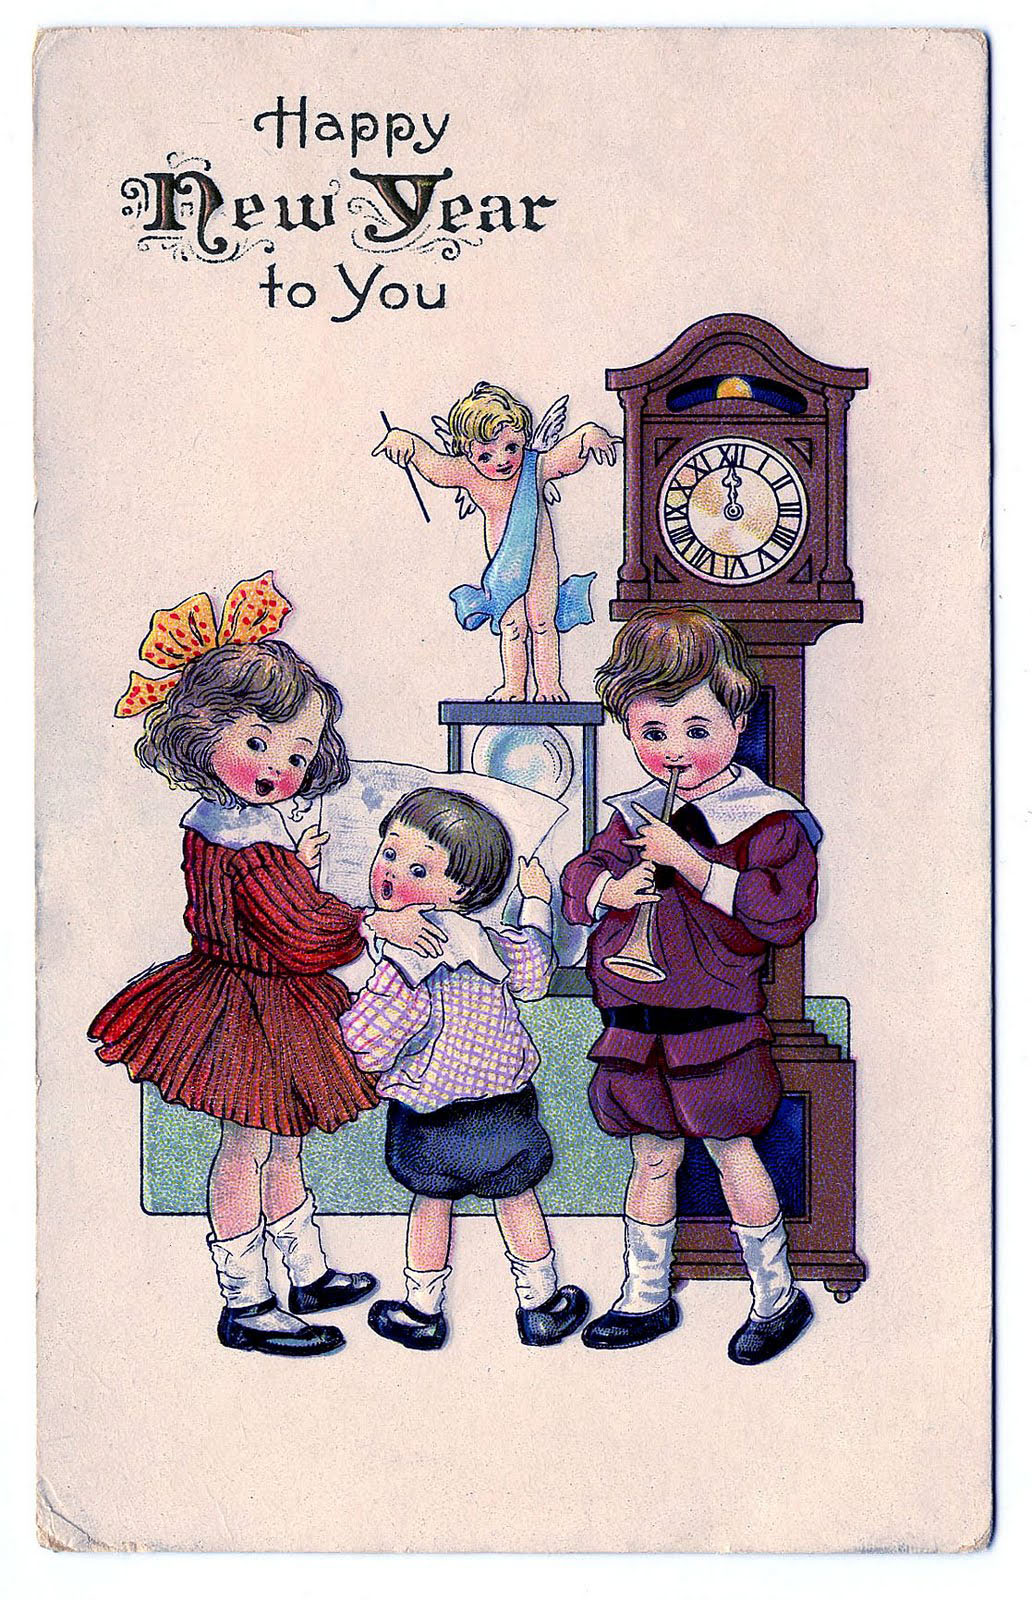 9 New Years Angels and Cherubs Clipart!.